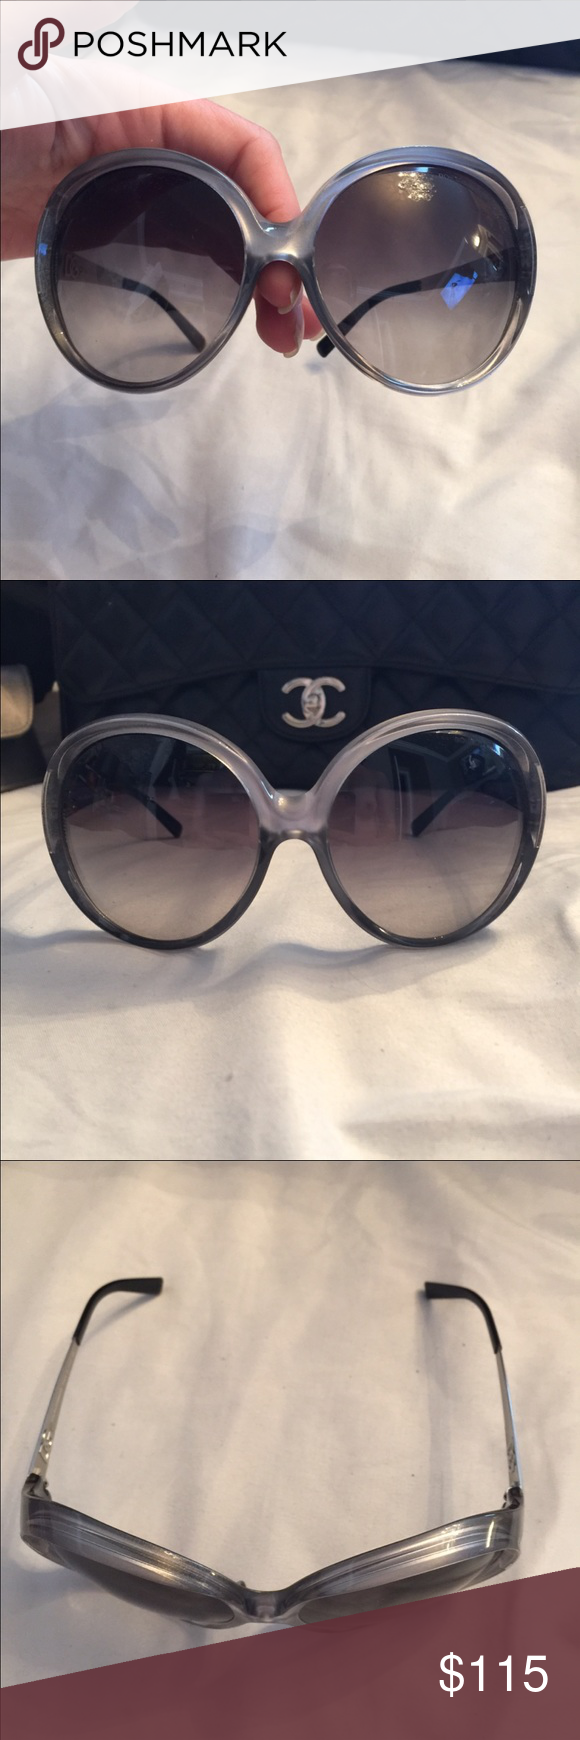 Brand NEW D&G Dolce Gabbana Sunglasses Grey This is a great large round pair of sunglasses offering excellent coverage, comfort and style. Color is a mix of grey on the front and silver metal handles. D&G Accessories Sunglasses